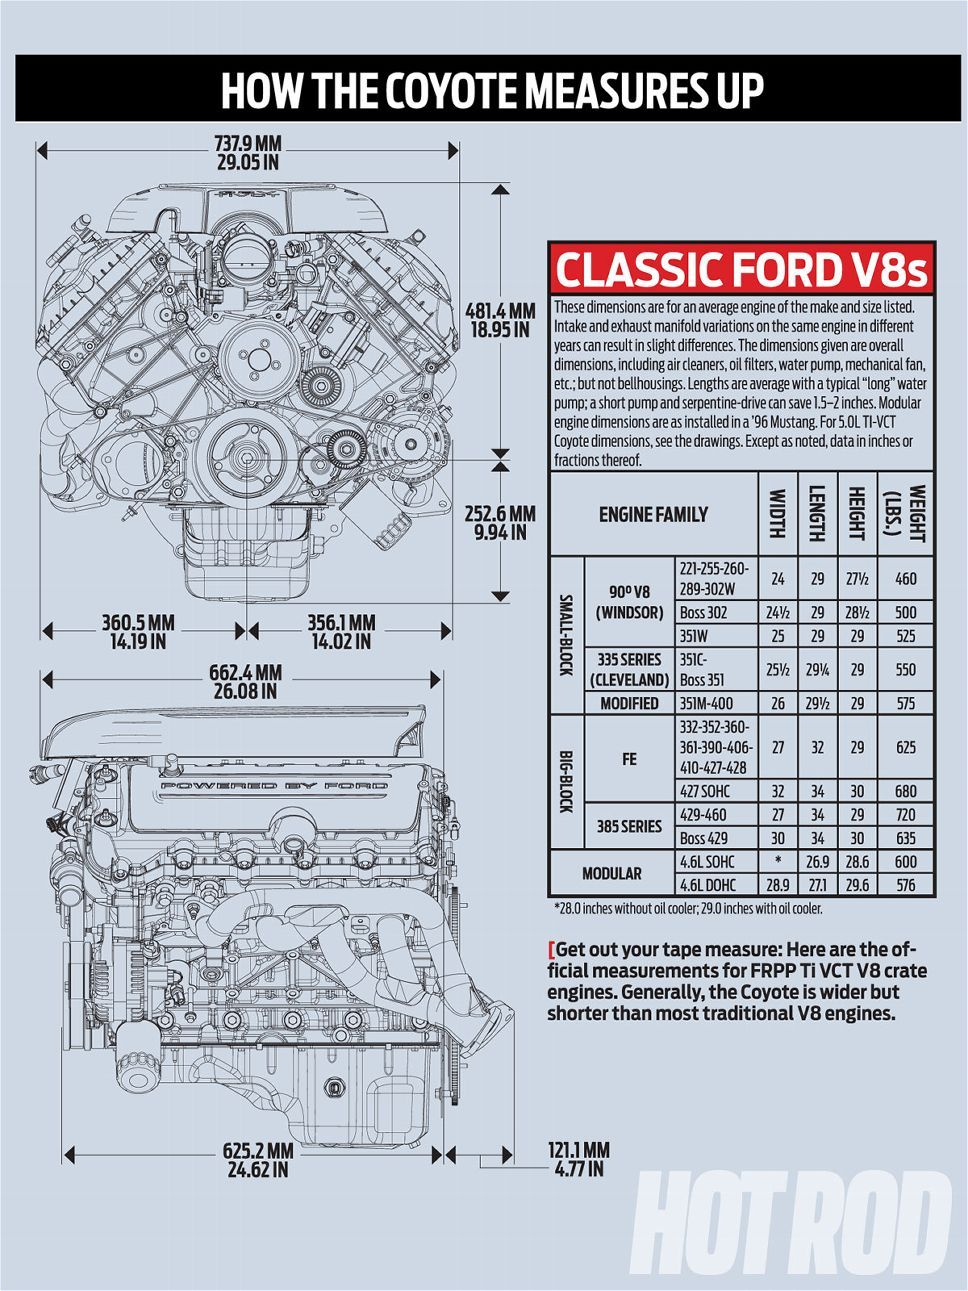 Ford Coyote Engine Swap Guide How The Measures Up Graph Photo 1965 Chevy C10 Truck Wiring Diagram Tail Lights 2